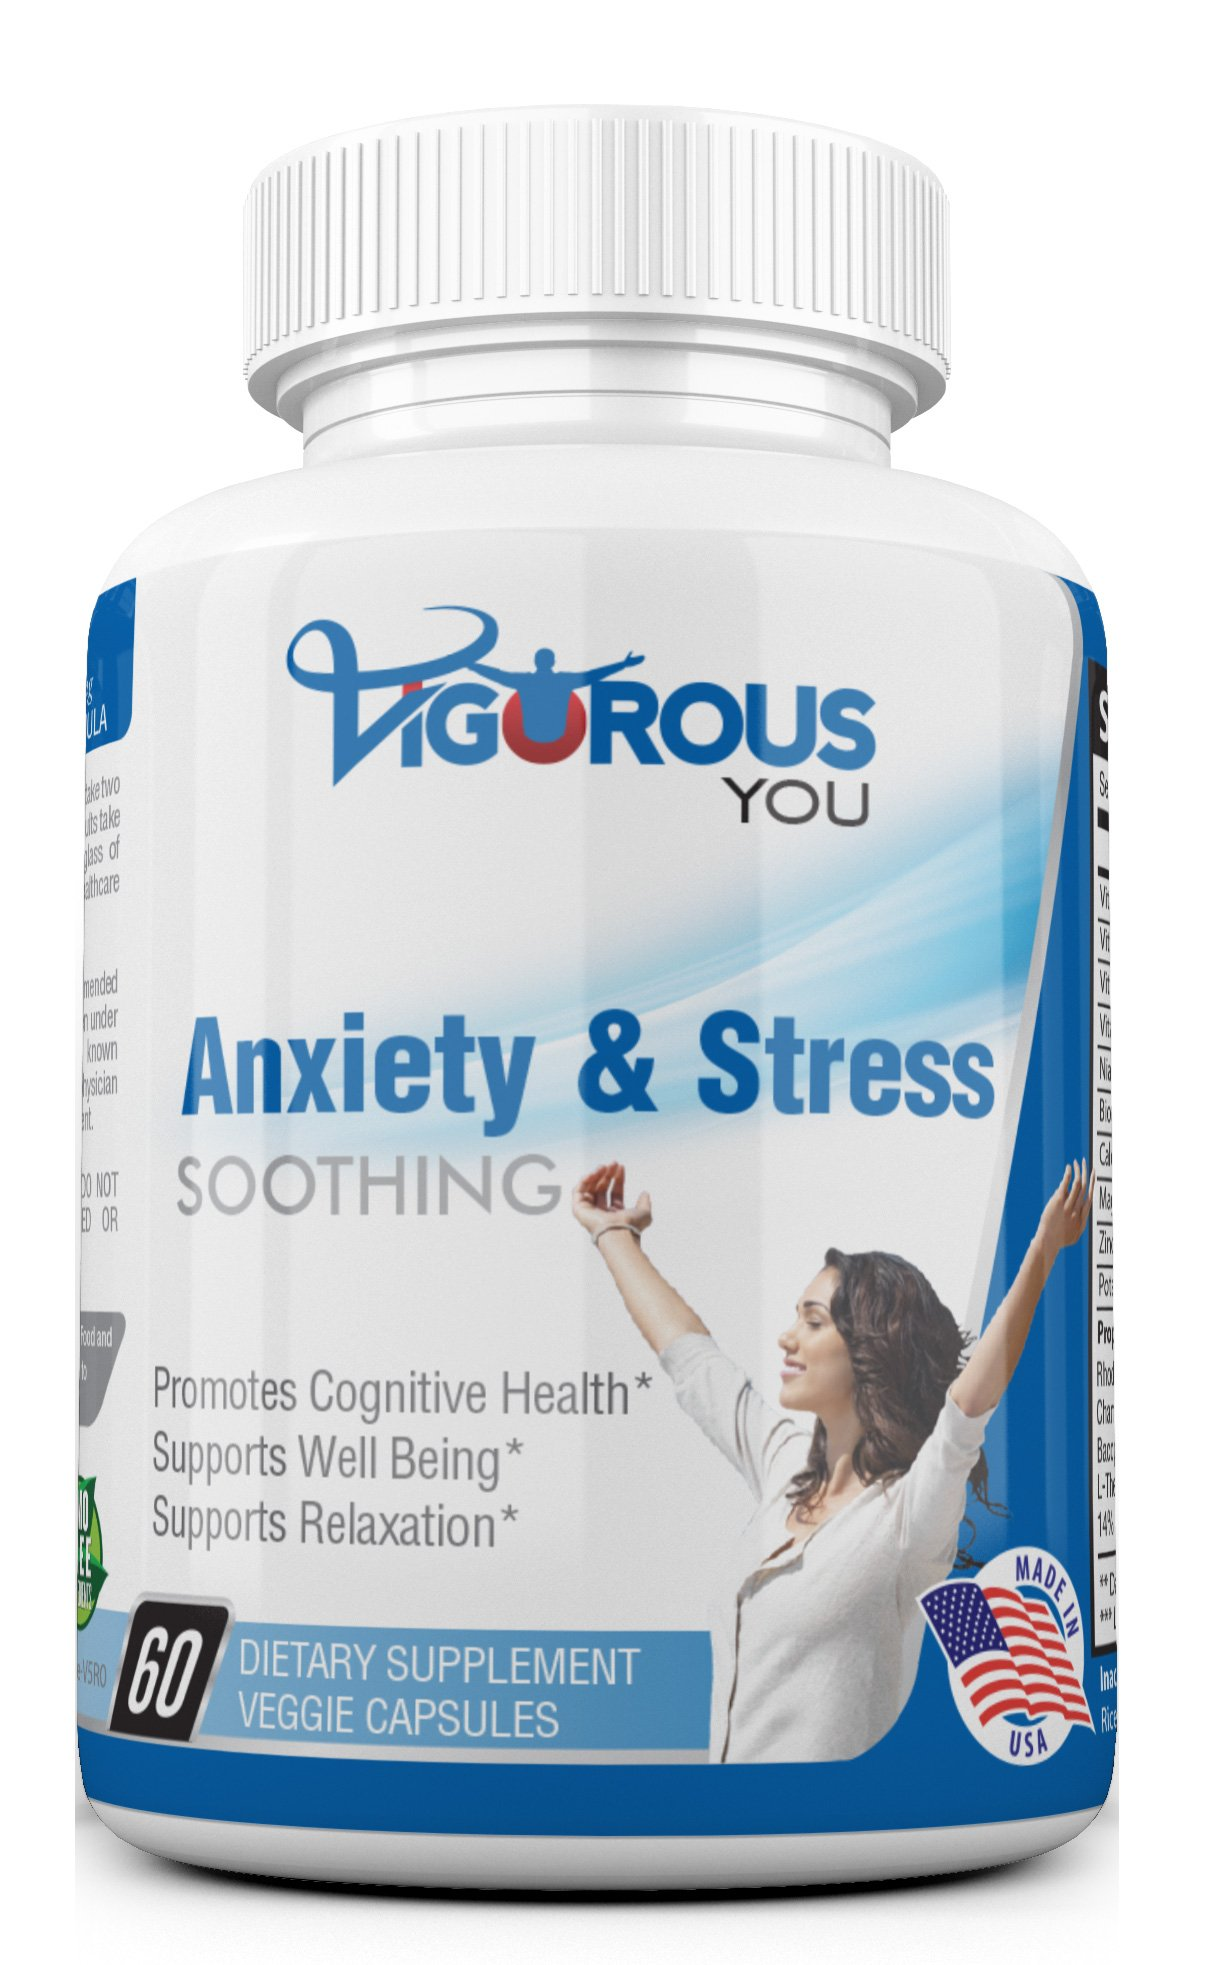 Soothing Calm Powerful Anxiety & Stress Supplement - All-Natural Work Anxiety Relief Supplements Herbal Blend Keeps Busy Minds Calm, Happy, Focused & Relaxed w/L-Theanine, Niacin, 5-HTP and More